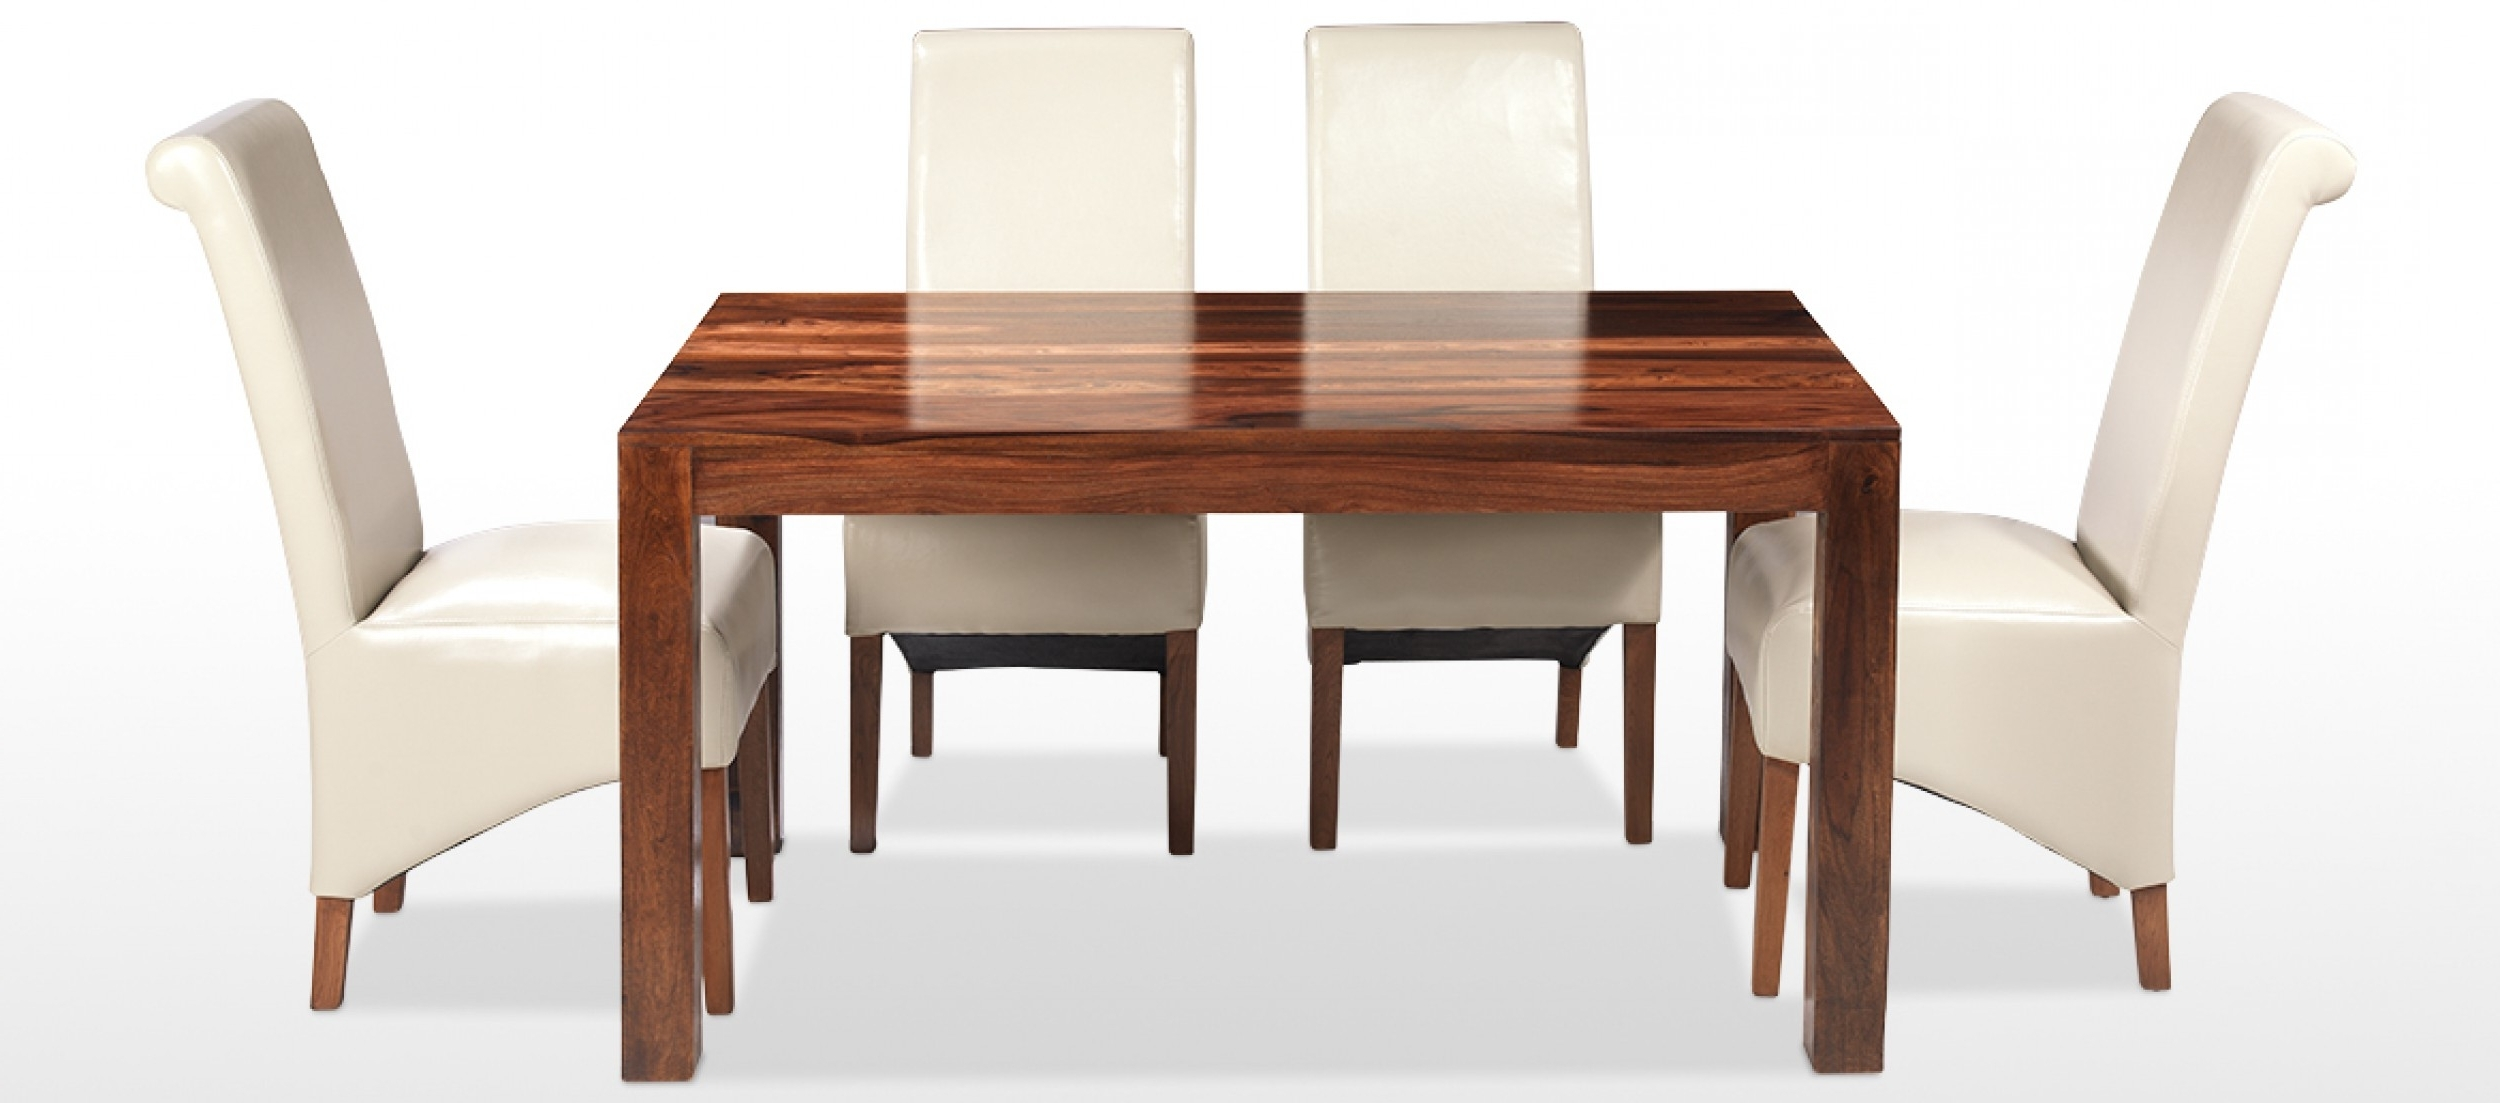 Quercus Living With Well Known Cube Dining Tables (Gallery 4 of 25)